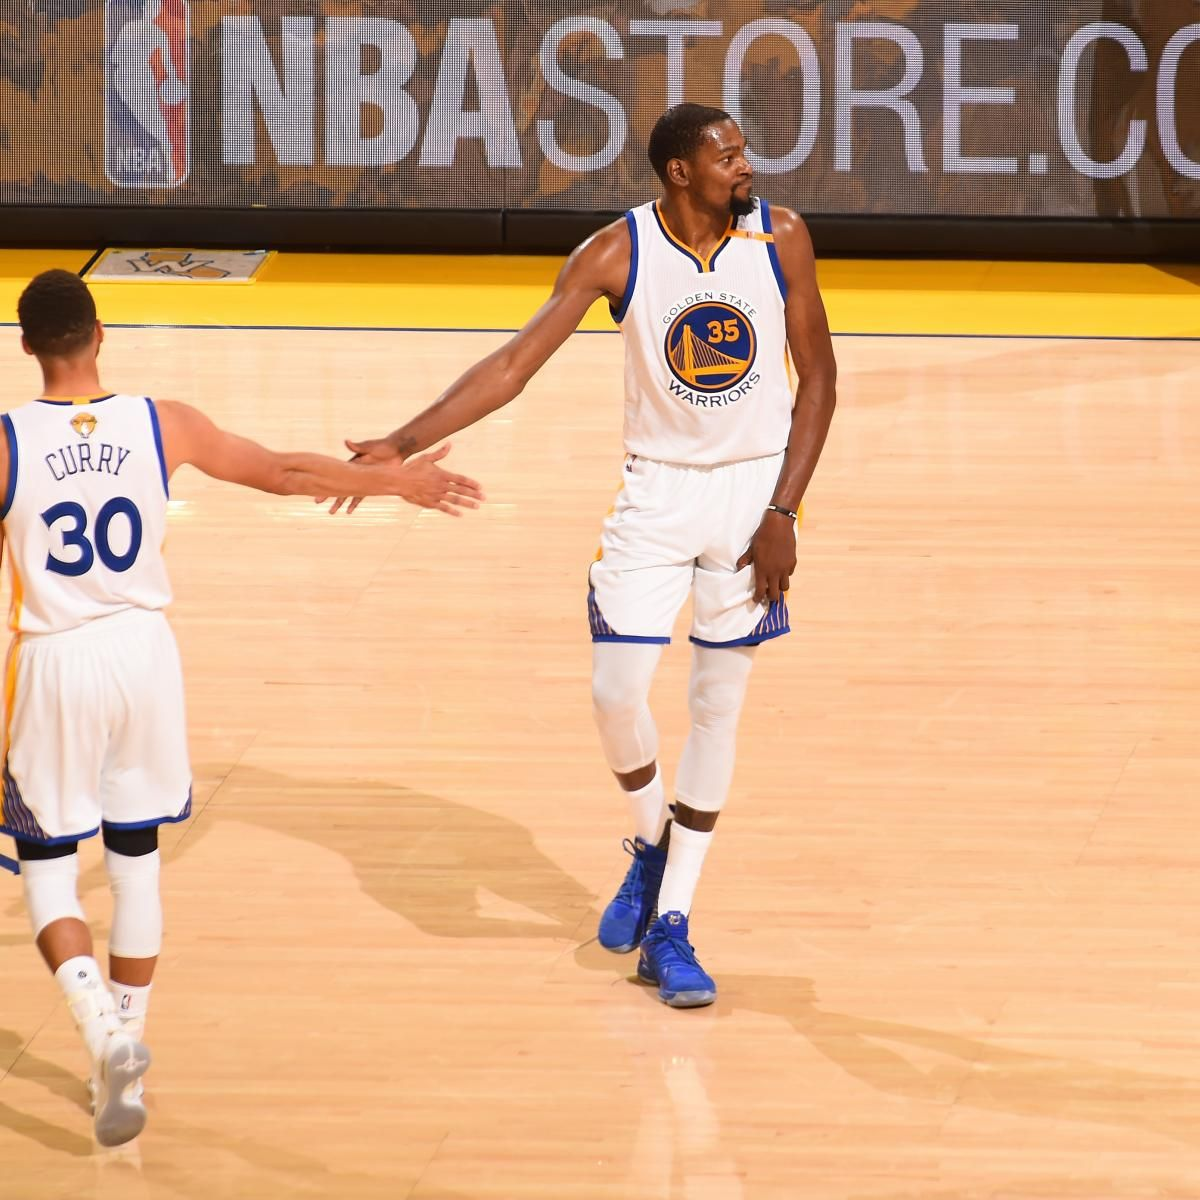 Warriors Record Without Stephen Curry 2017: NBA Schedule 2017-18: Team-by-Team Record Predictions And